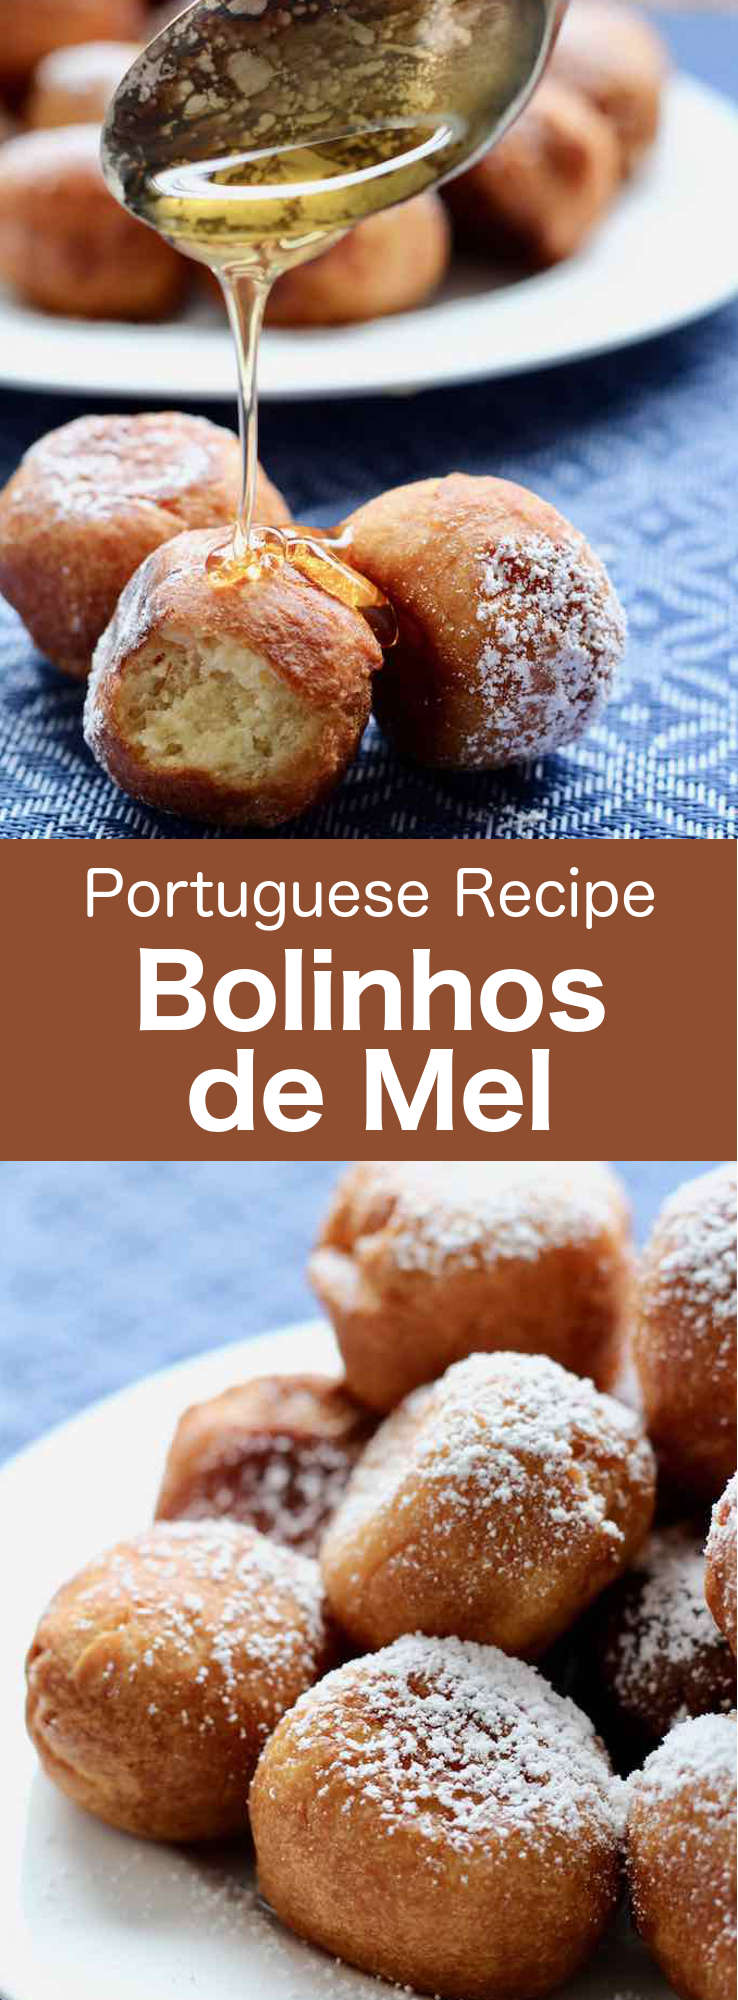 Bolinhos de mel (also called pasteis de mel) are delicious little Portuguese honey beignets, traditionally flavored with cinnamon, clove and lemon. #Portugal #PortugueseRecipe #donut #beignet #WorldCuisine #196flavors